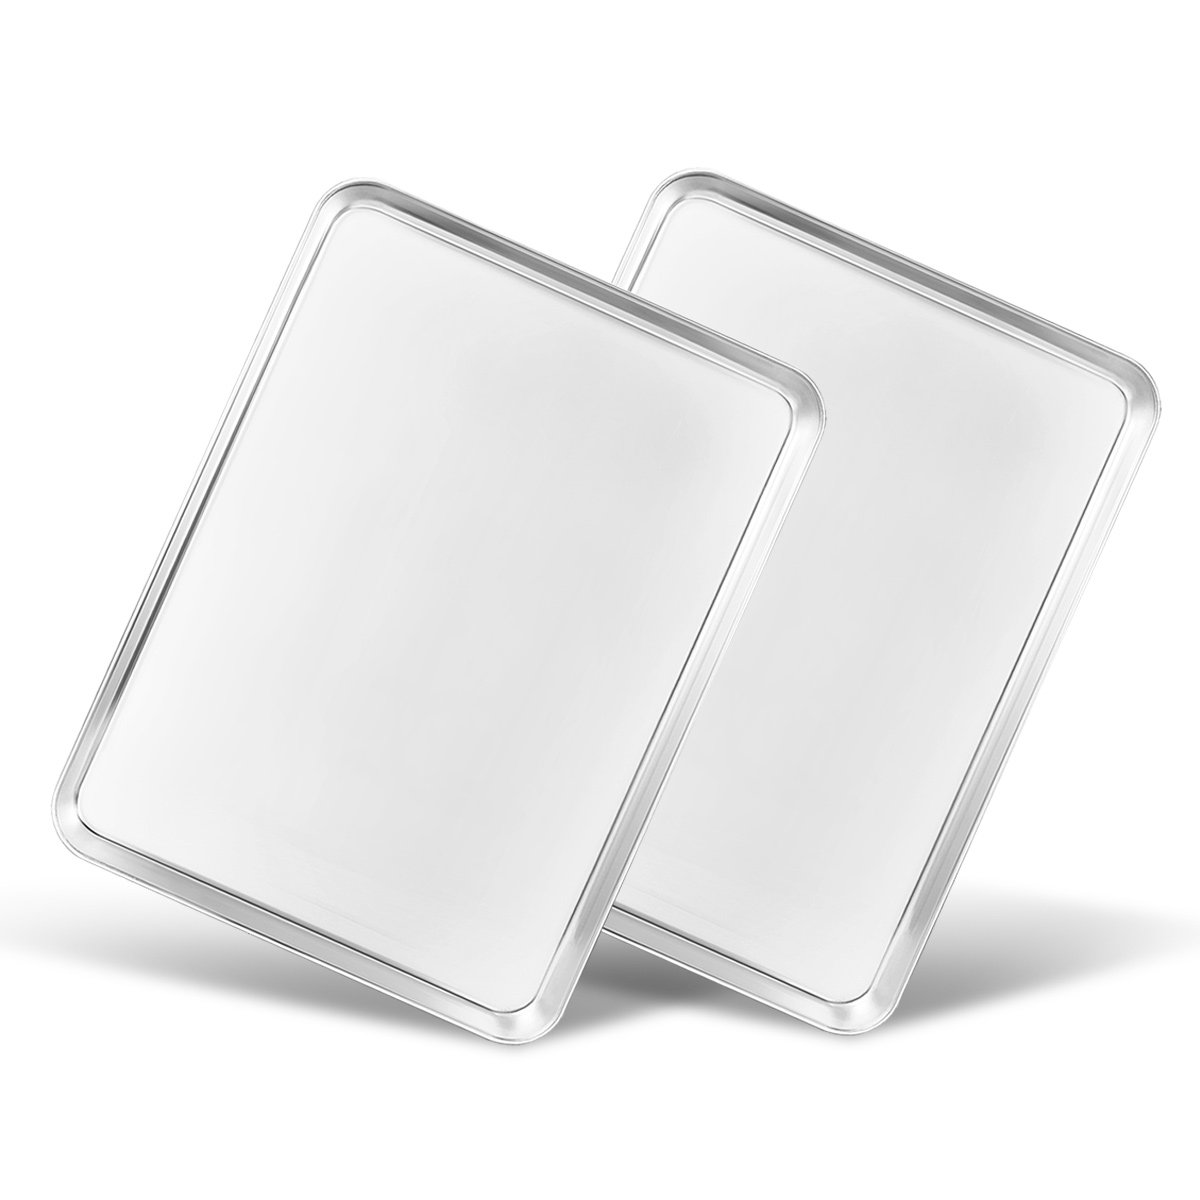 Baking Sheet Set of 2, Bastwe Stainless Steel Cookie Sheet 2 Pieces 16 inch Professional Toaster Oven Bakeware Baking Pan, Healthy & Non Toxic, Mirror Finish & Rust Free, Easy Clean & Dishwasher Safe